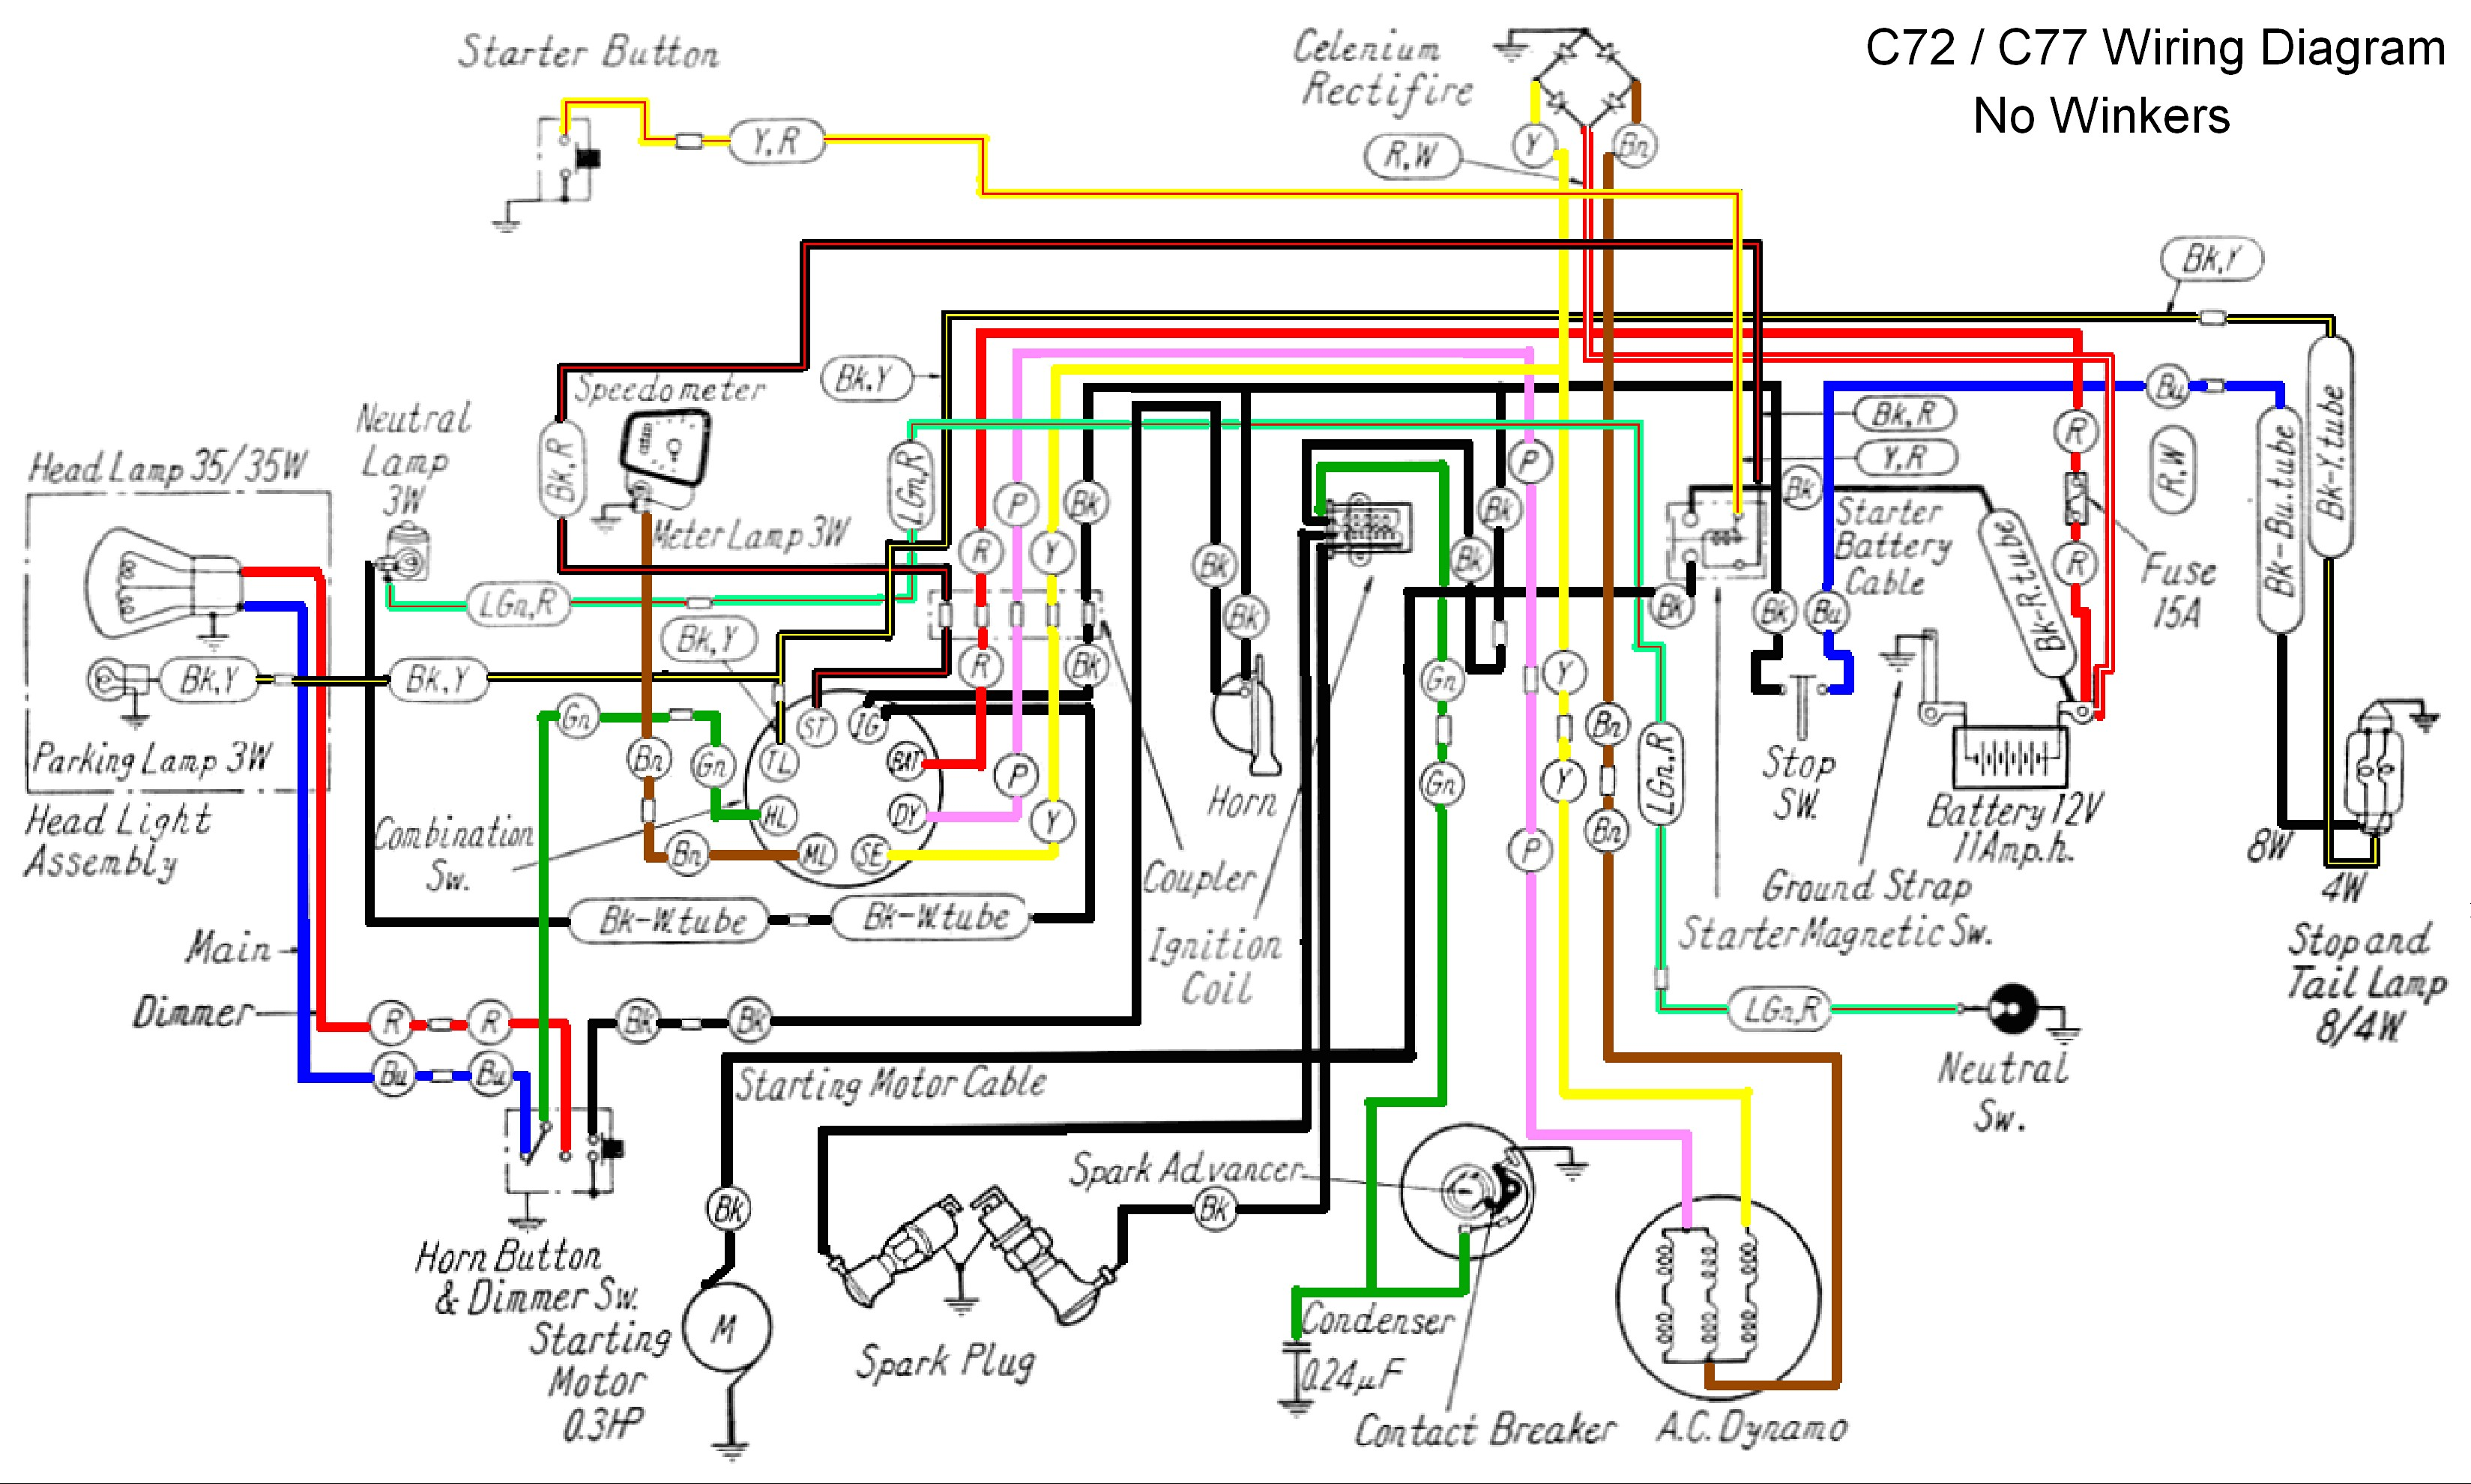 Dohc Cb750 Chopper Wiring Diagram - WIRE Center •